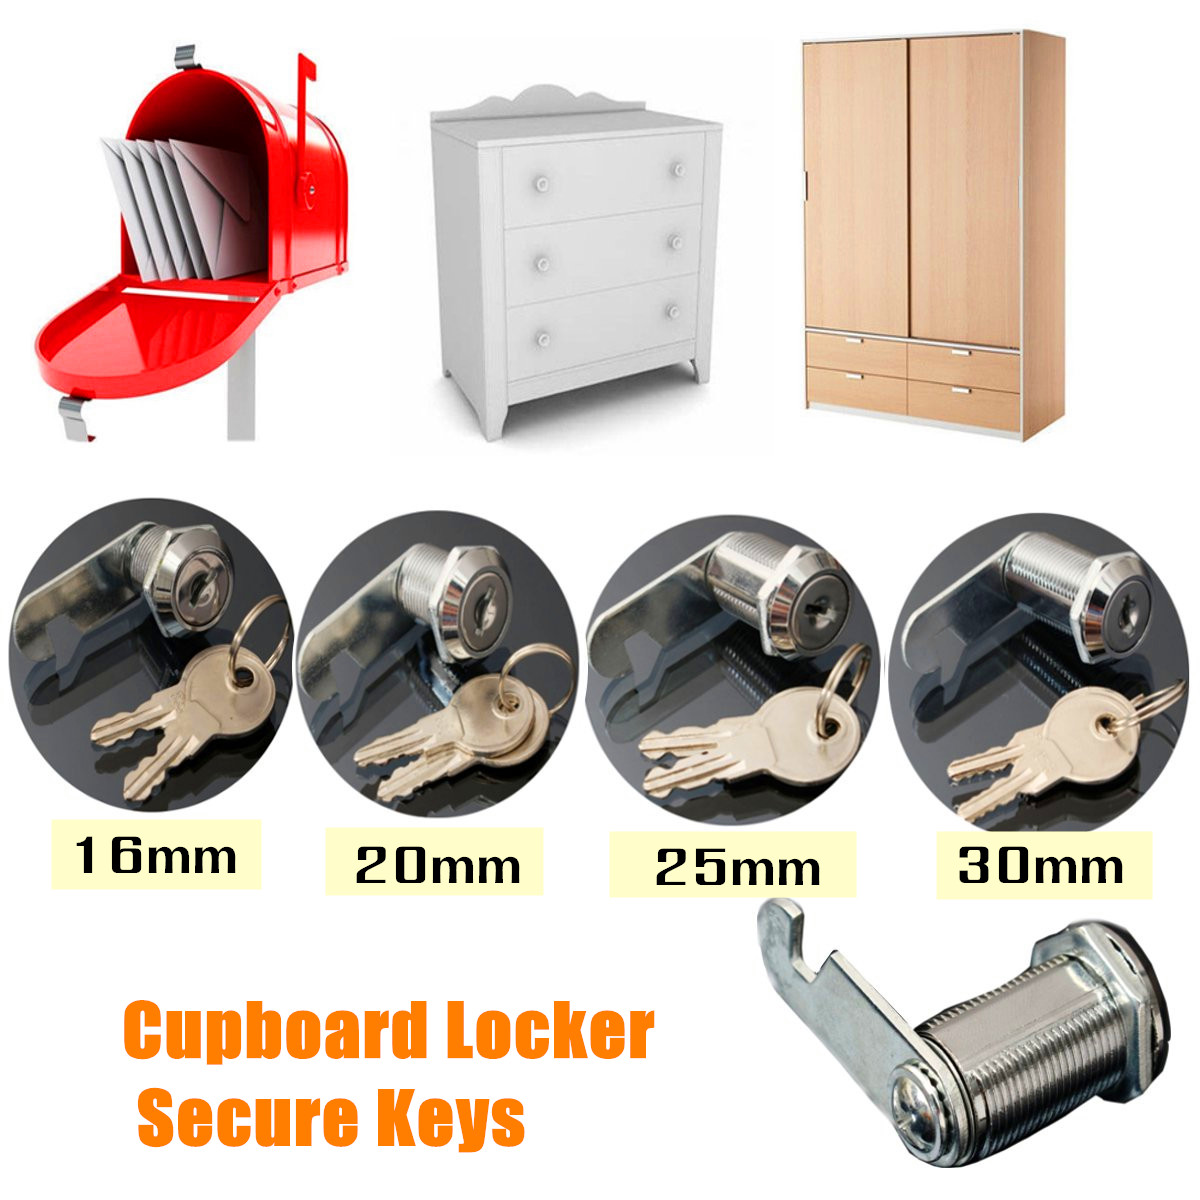 Hasps & Locks 4 Size 16/20/25/30mm Safe Cam Lock Pinball Arcade Machine Door Cabinet Toolbox Drawer & 2key For Filing Mailbox Drawer Cupboard A Great Variety Of Models